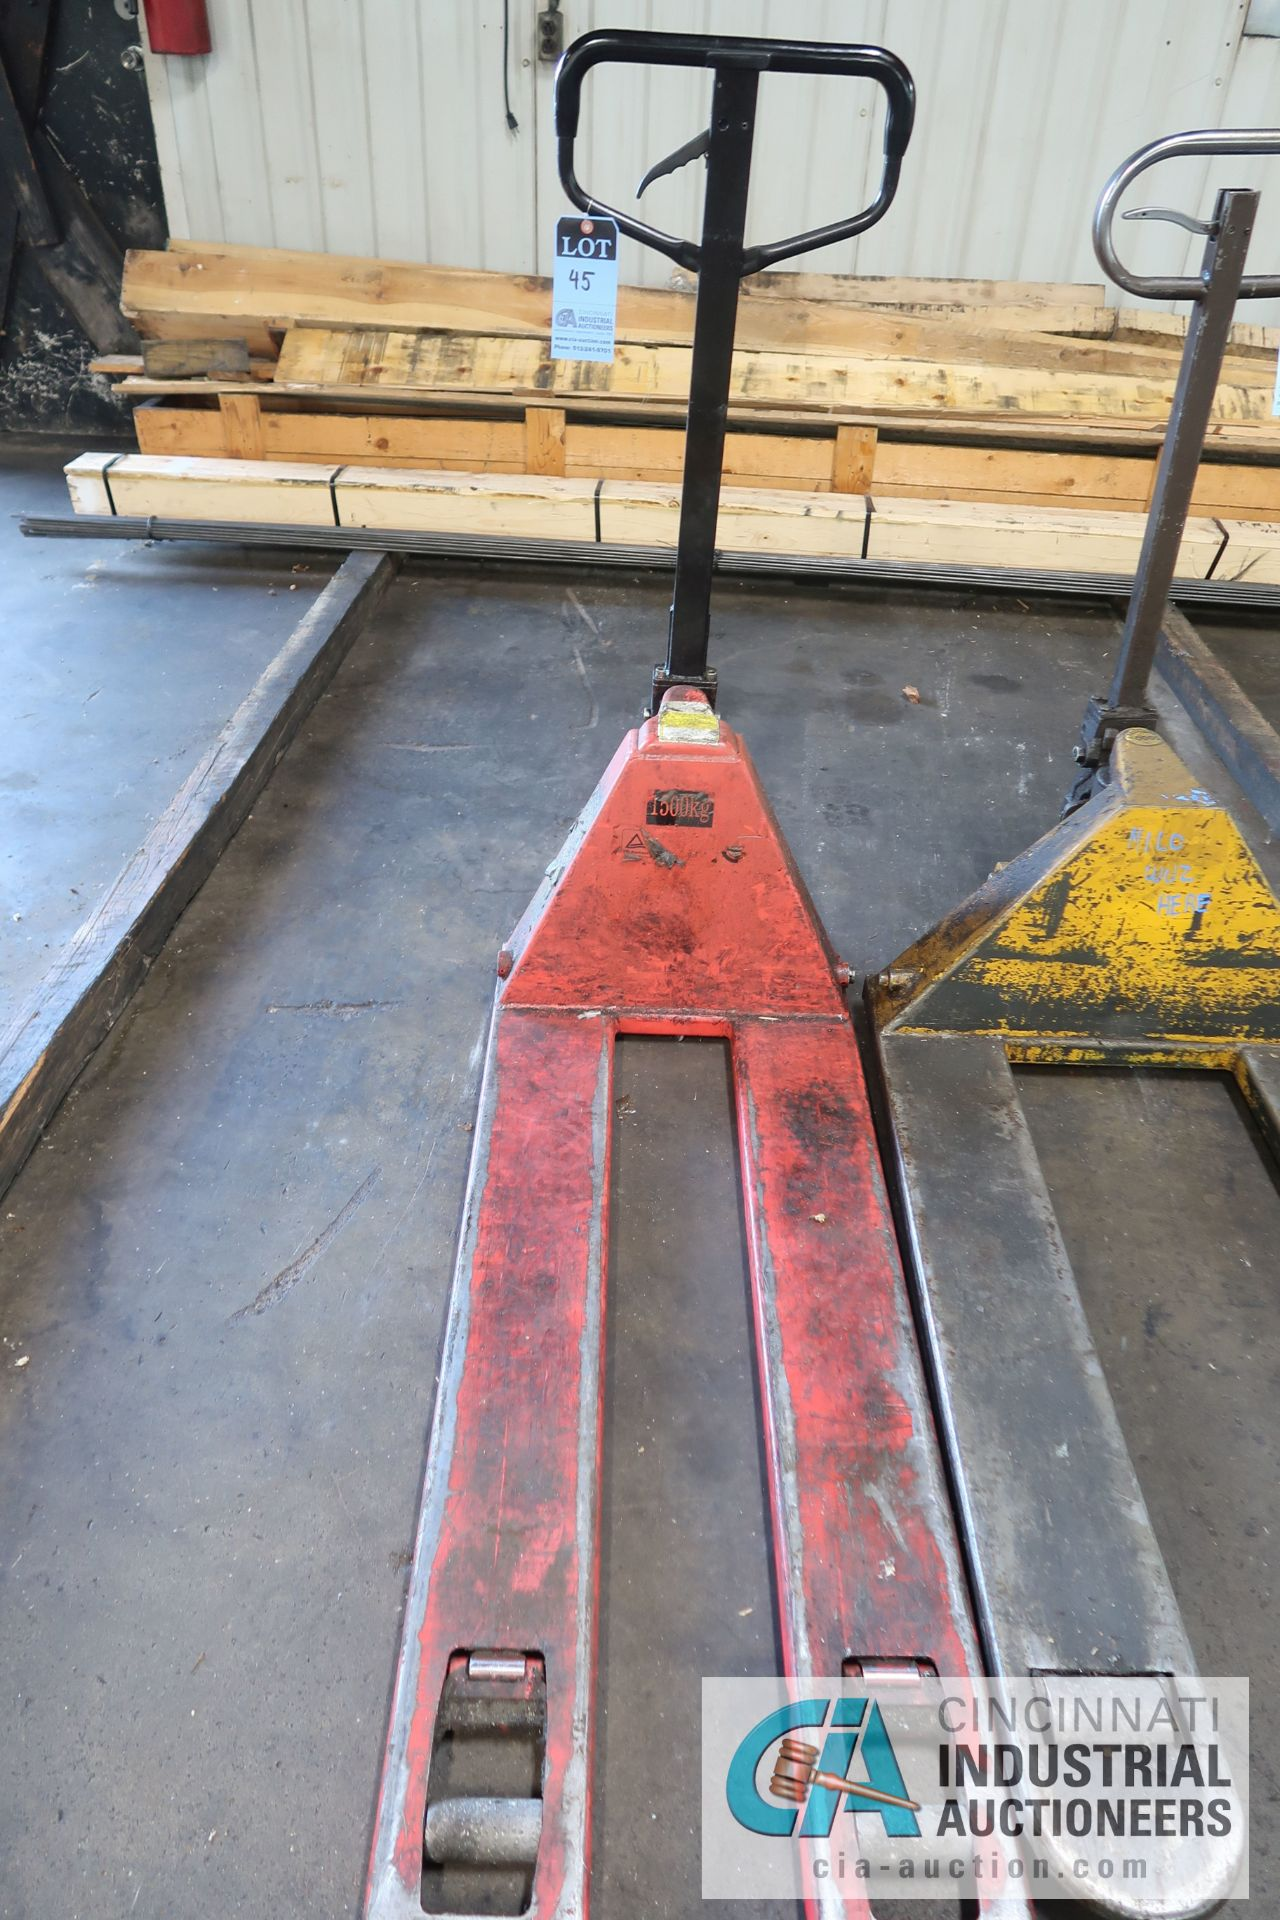 Lot 45 - 5,000 LB. AND 1,500 KG HAND HYDRAULIC PALLET TRUCKS